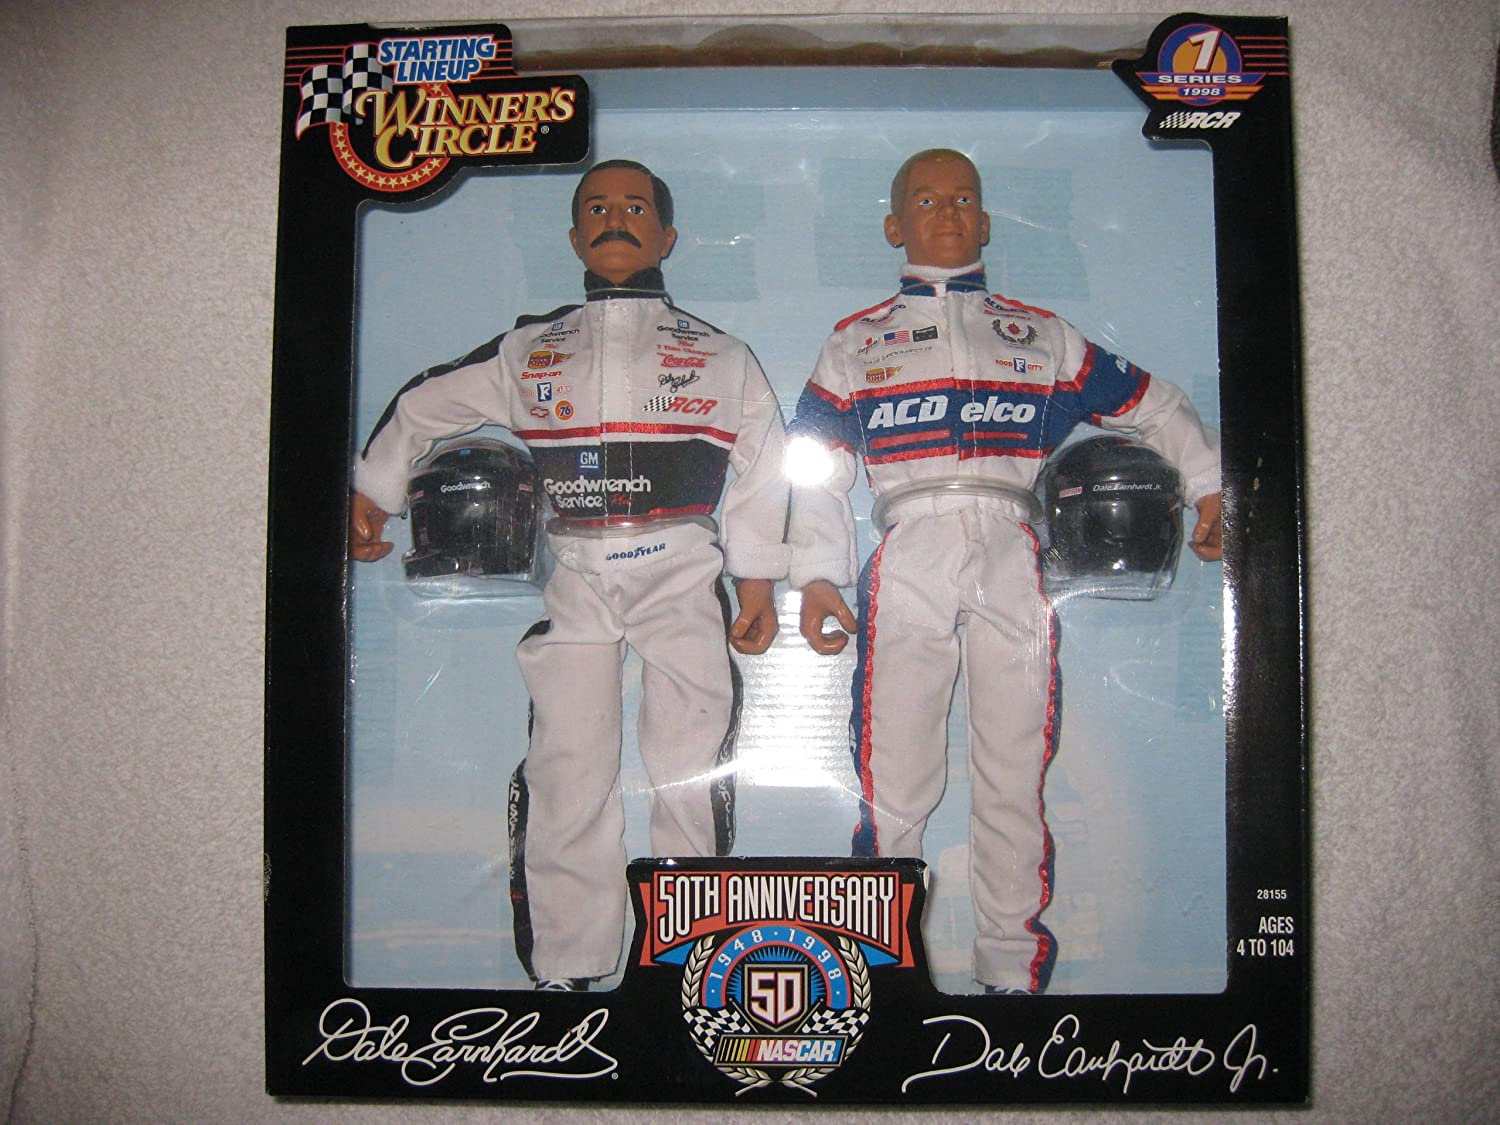 mas barato 1998 1998 1998 Series 1 Winners Circle 50th Anniversary Starting Lineup Dale Earnhardt and Dale Earnhardt Jr by Kenner  Ven a elegir tu propio estilo deportivo.